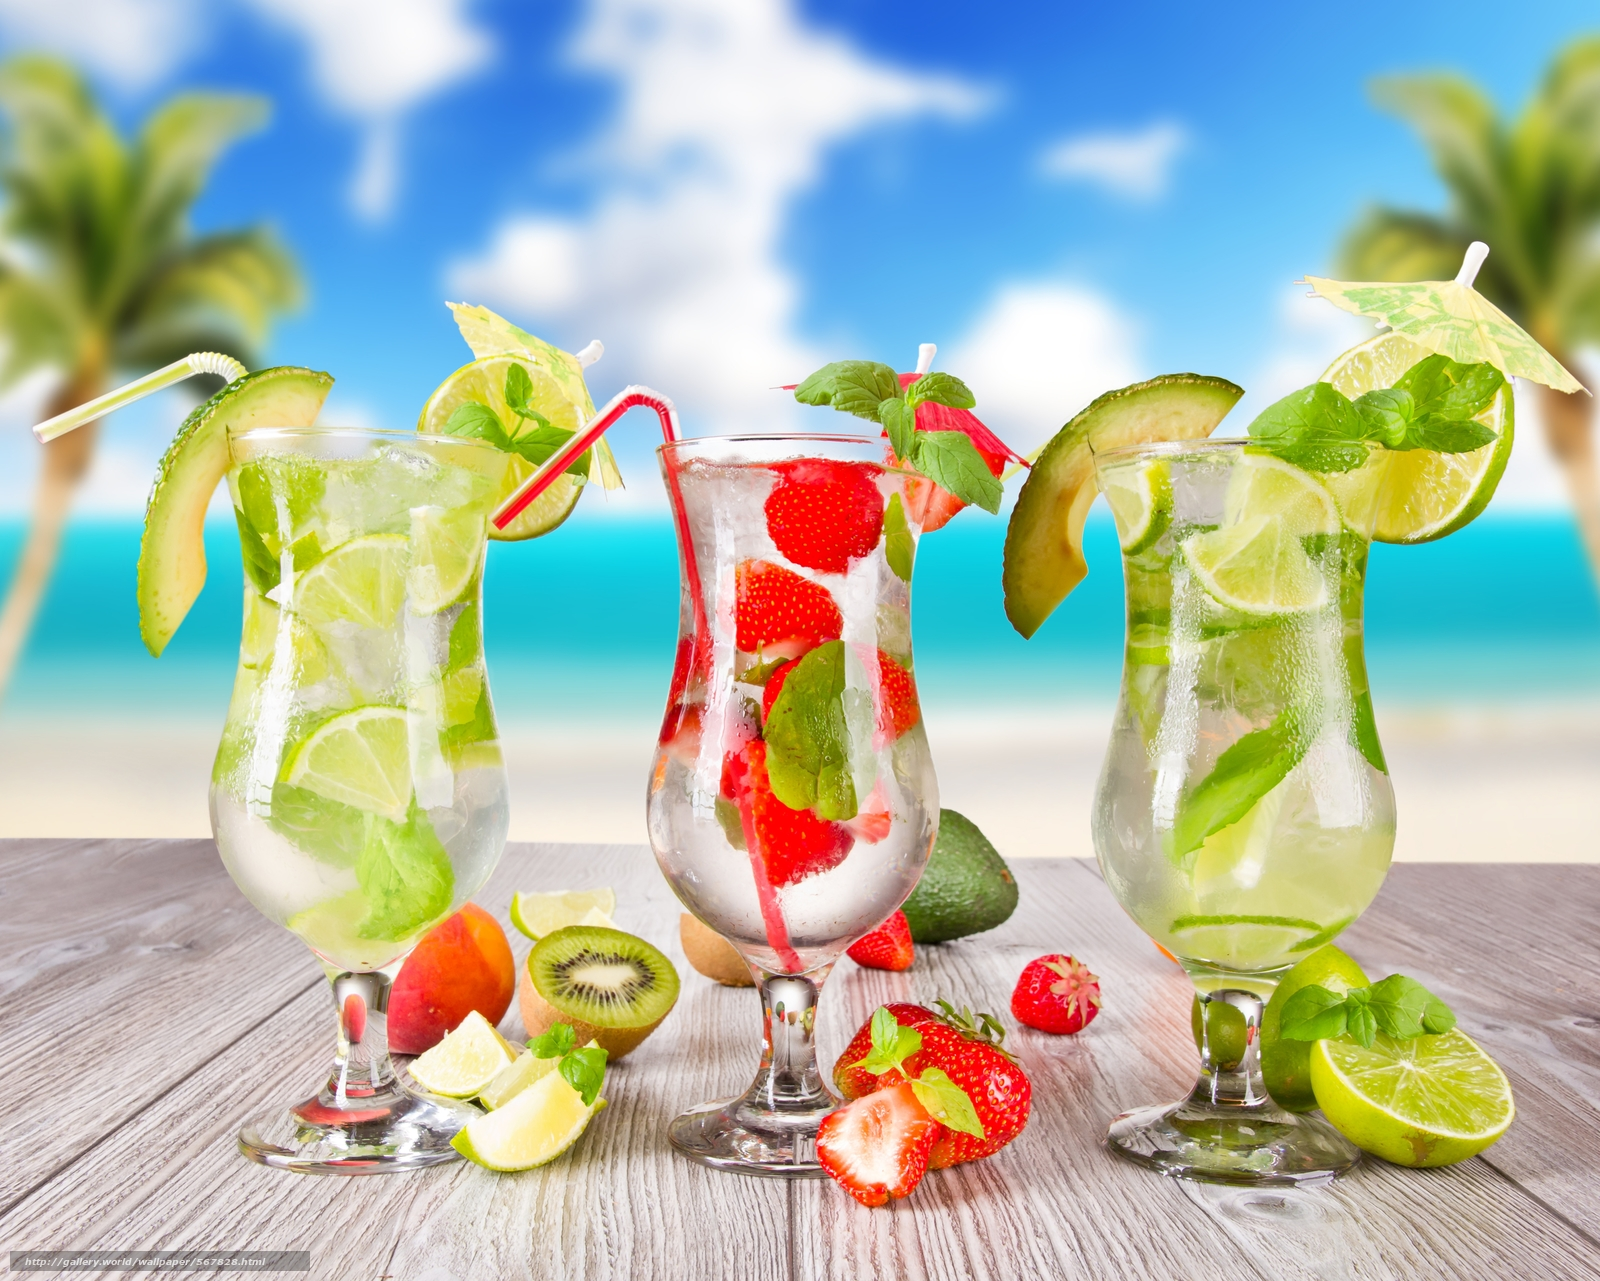 Download Wallpaper Tropical Cocktail Beach Fruits Free Desktop In The Resolution 7000x5603 Picture No567828